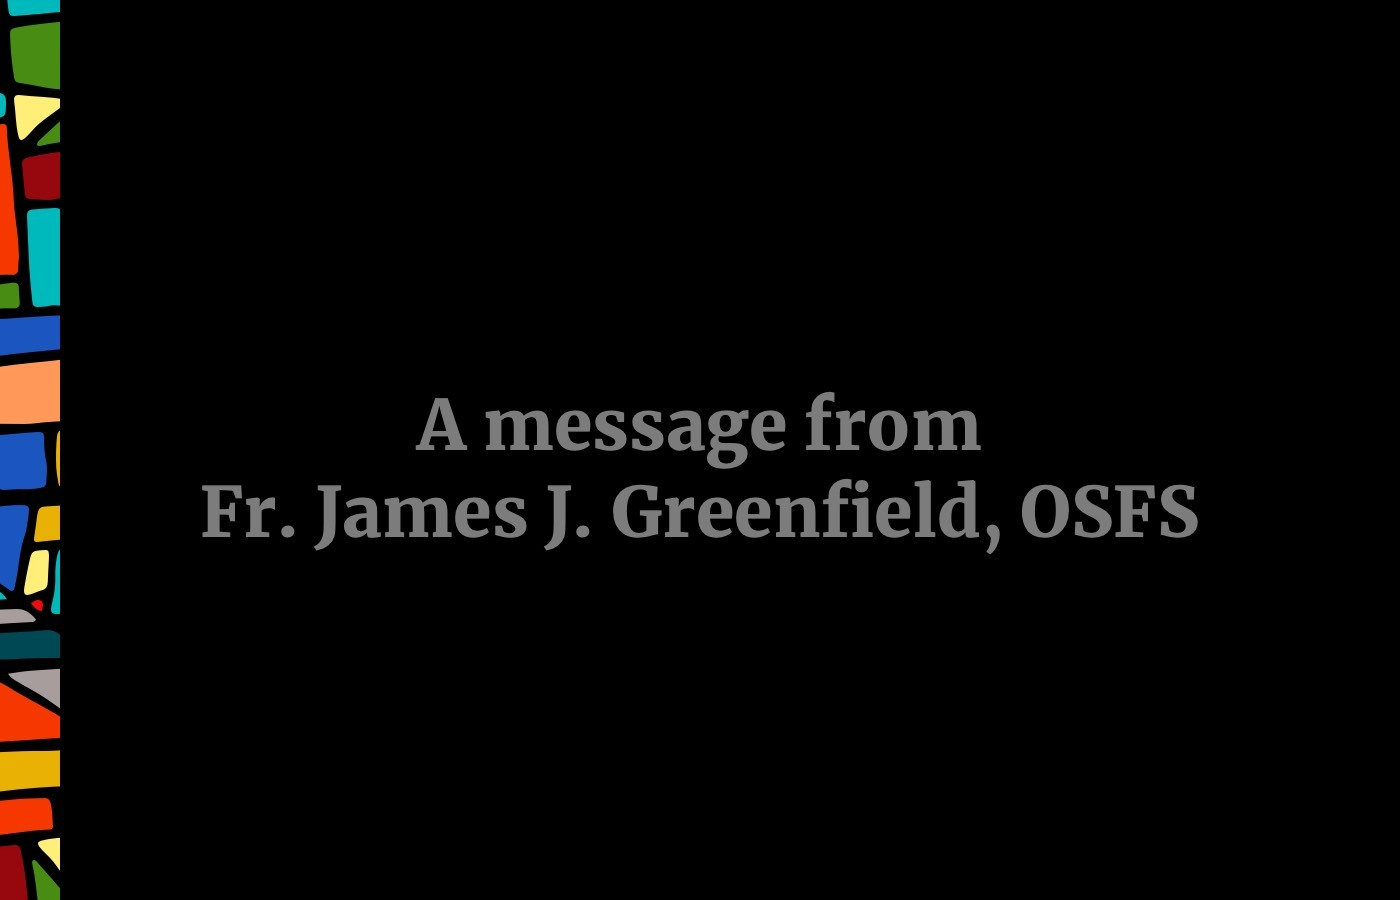 a message from father james j greenfield OSFS